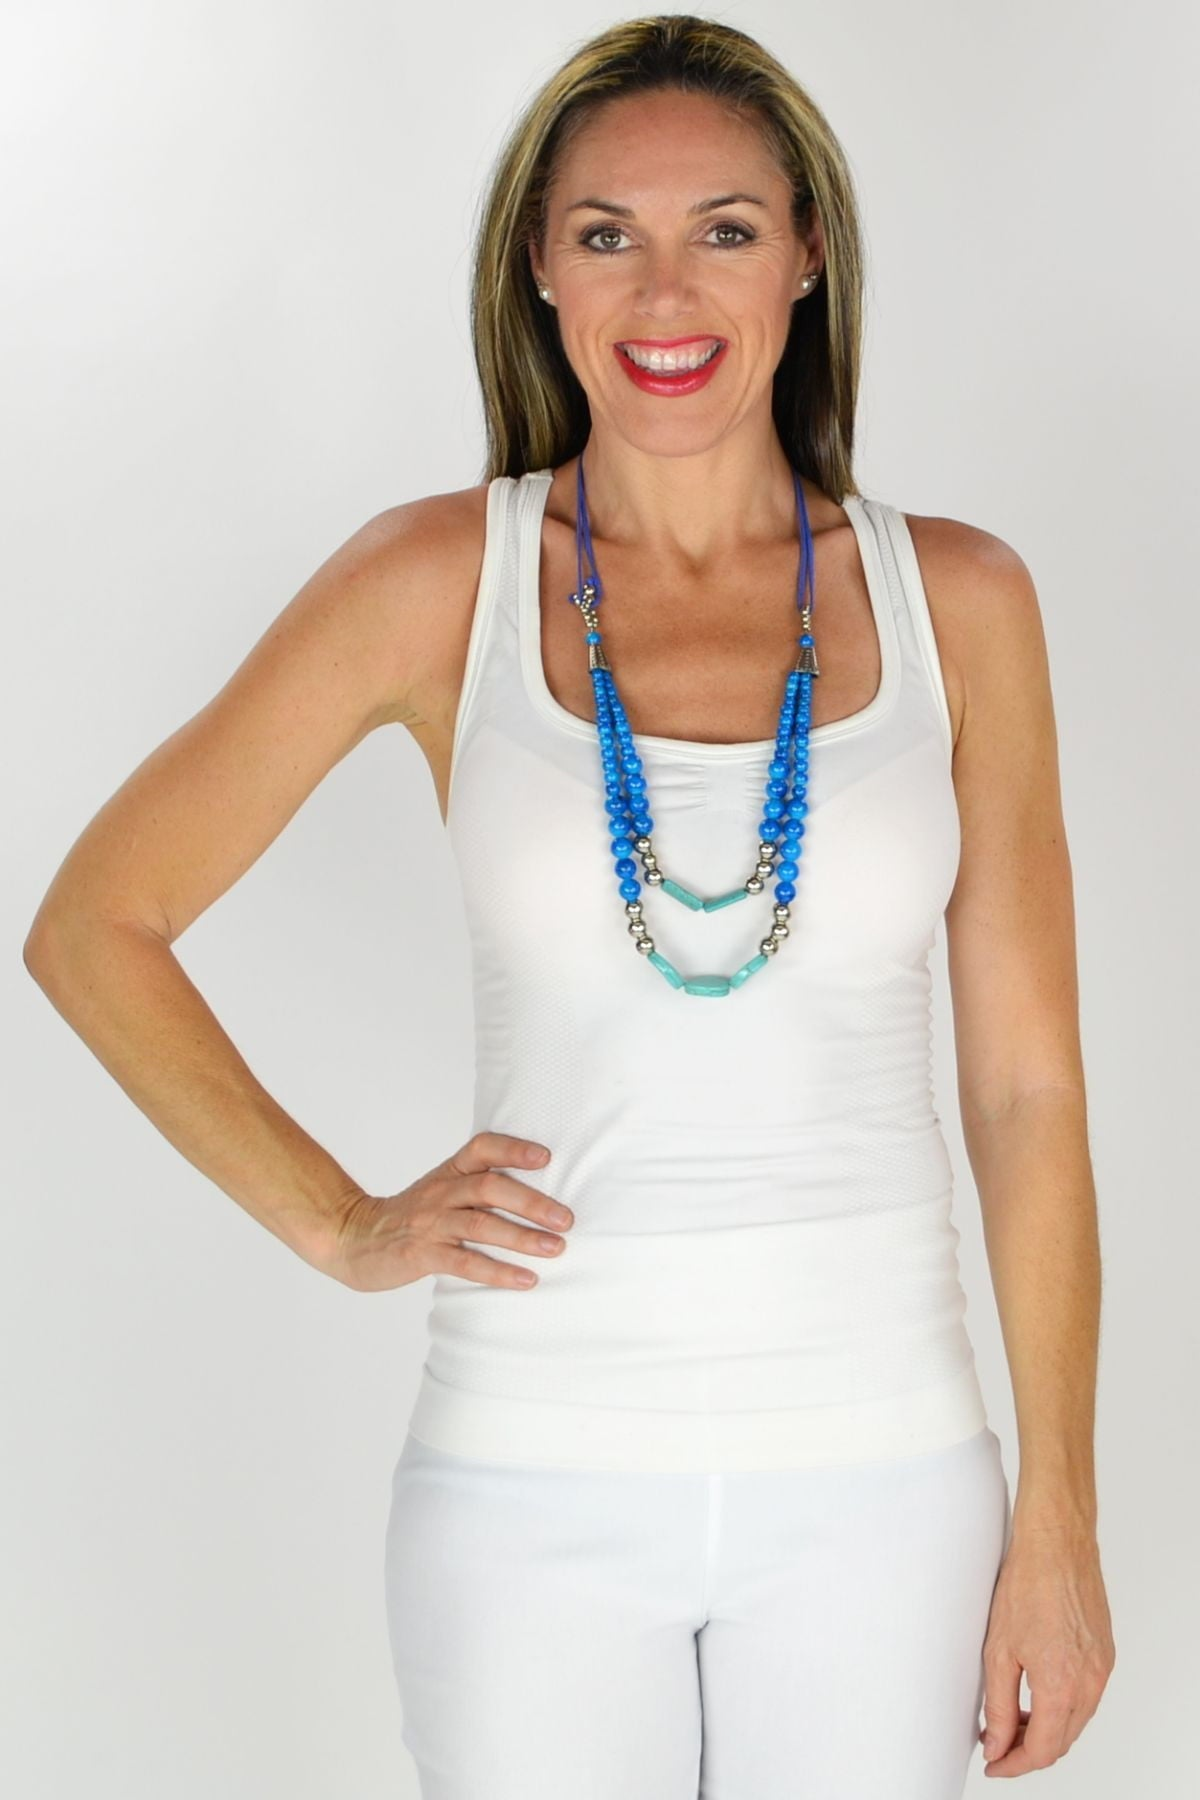 Forozan Blue Beads Necklace | I Love Tunics | Tunic Tops | Tunic | Tunic Dresses  | womens clothing online